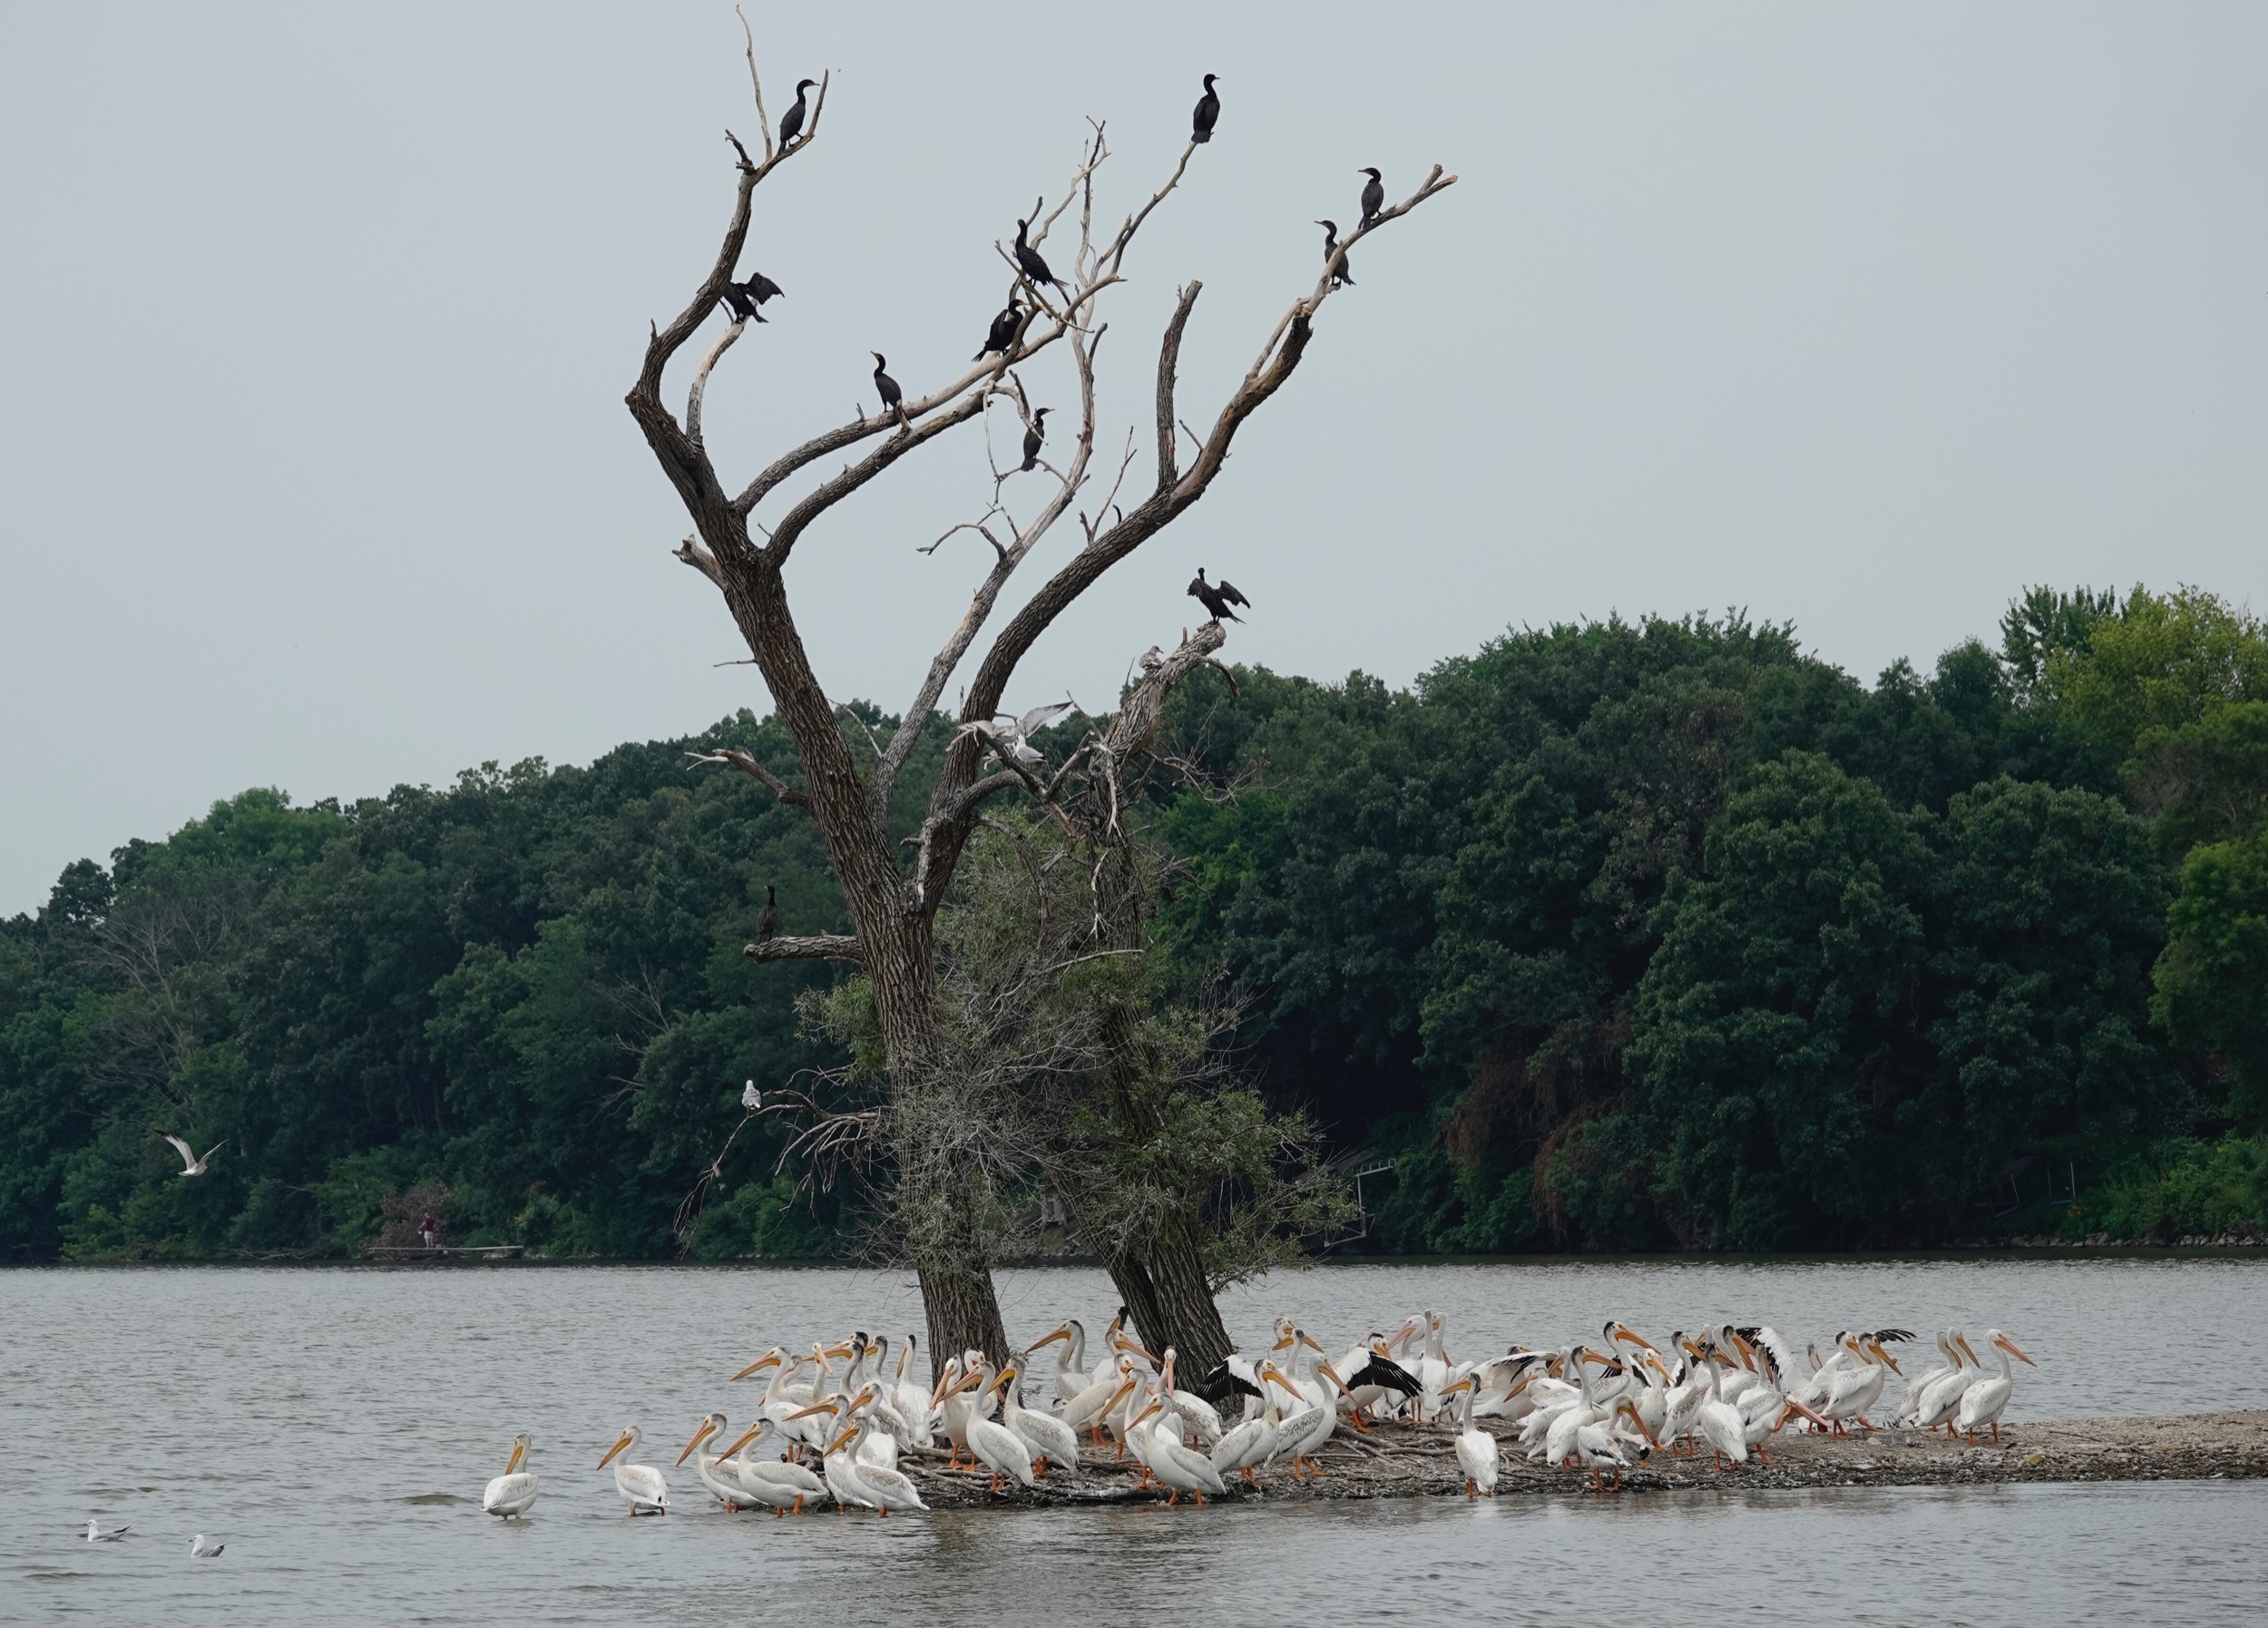 Some of these American White Pelicans have developed black feathers on the back of their heads.